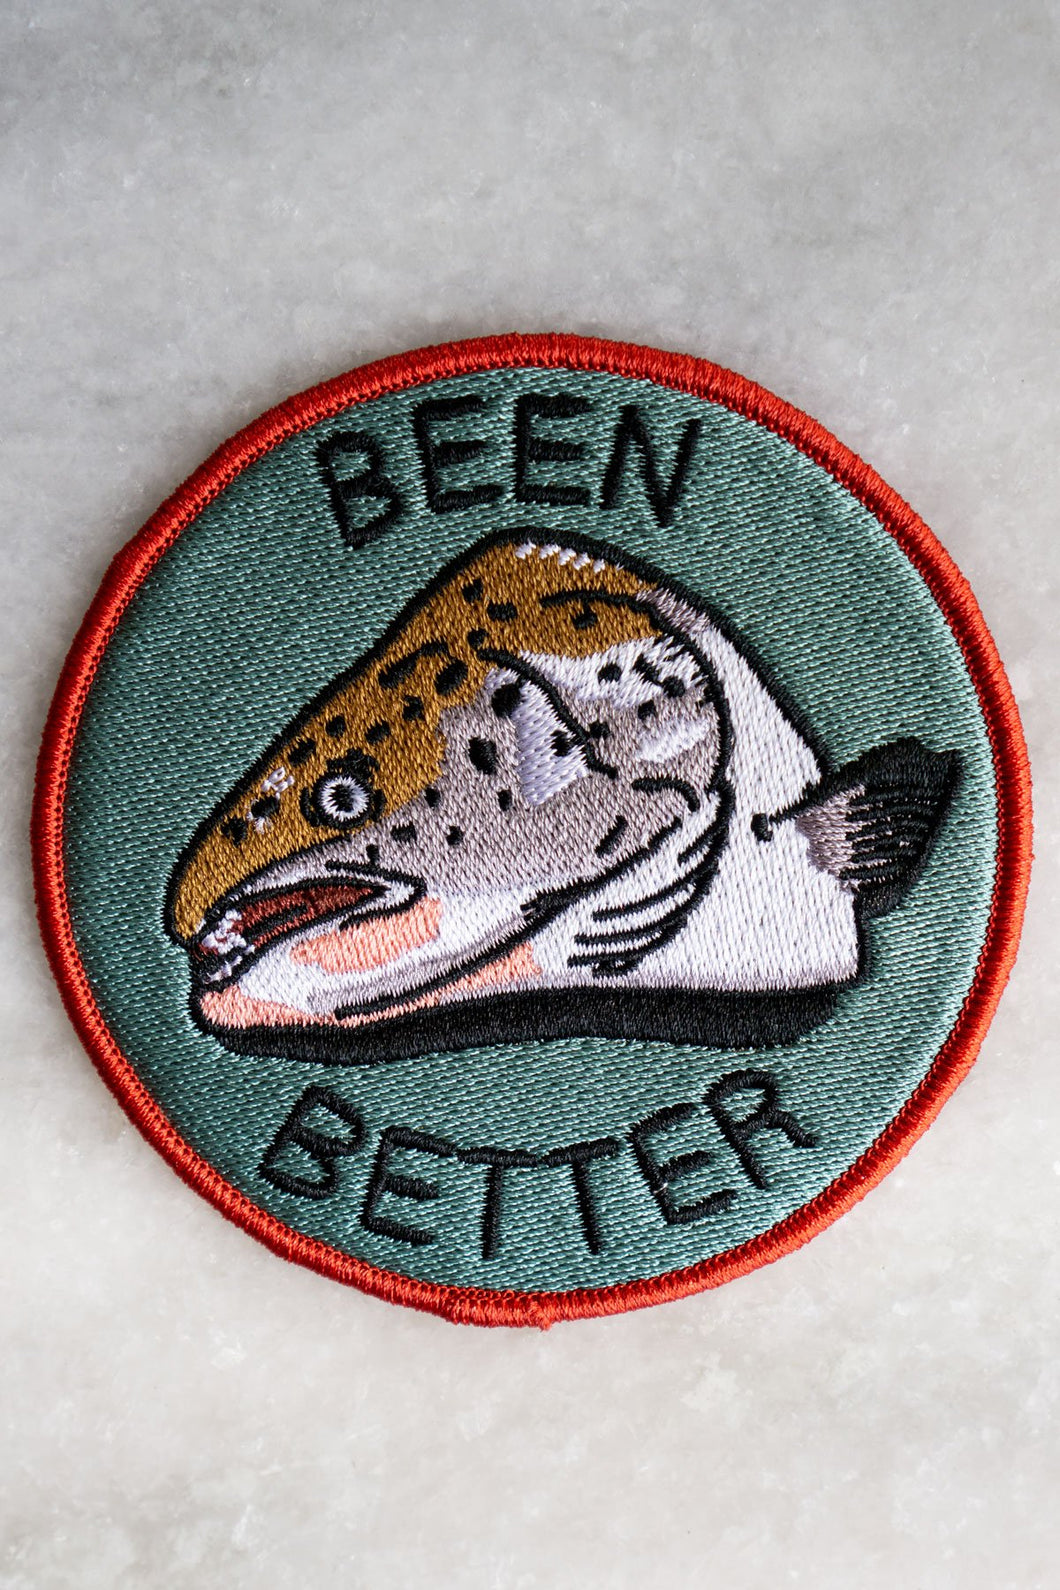 Stay Home Club Been Better Fish iron on patch from Indie Edinburgh